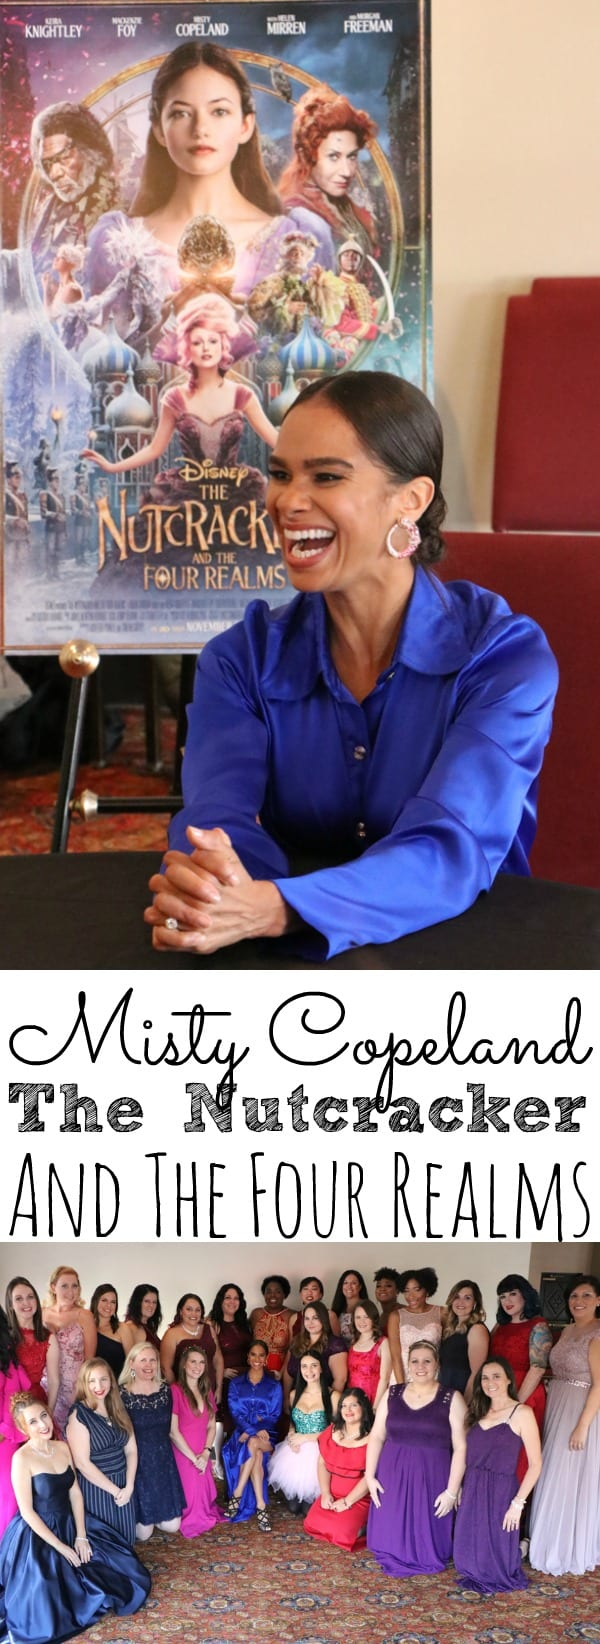 Misty Copeland Interview The Nutcracker and the Four Realms - simplytodaylife.com